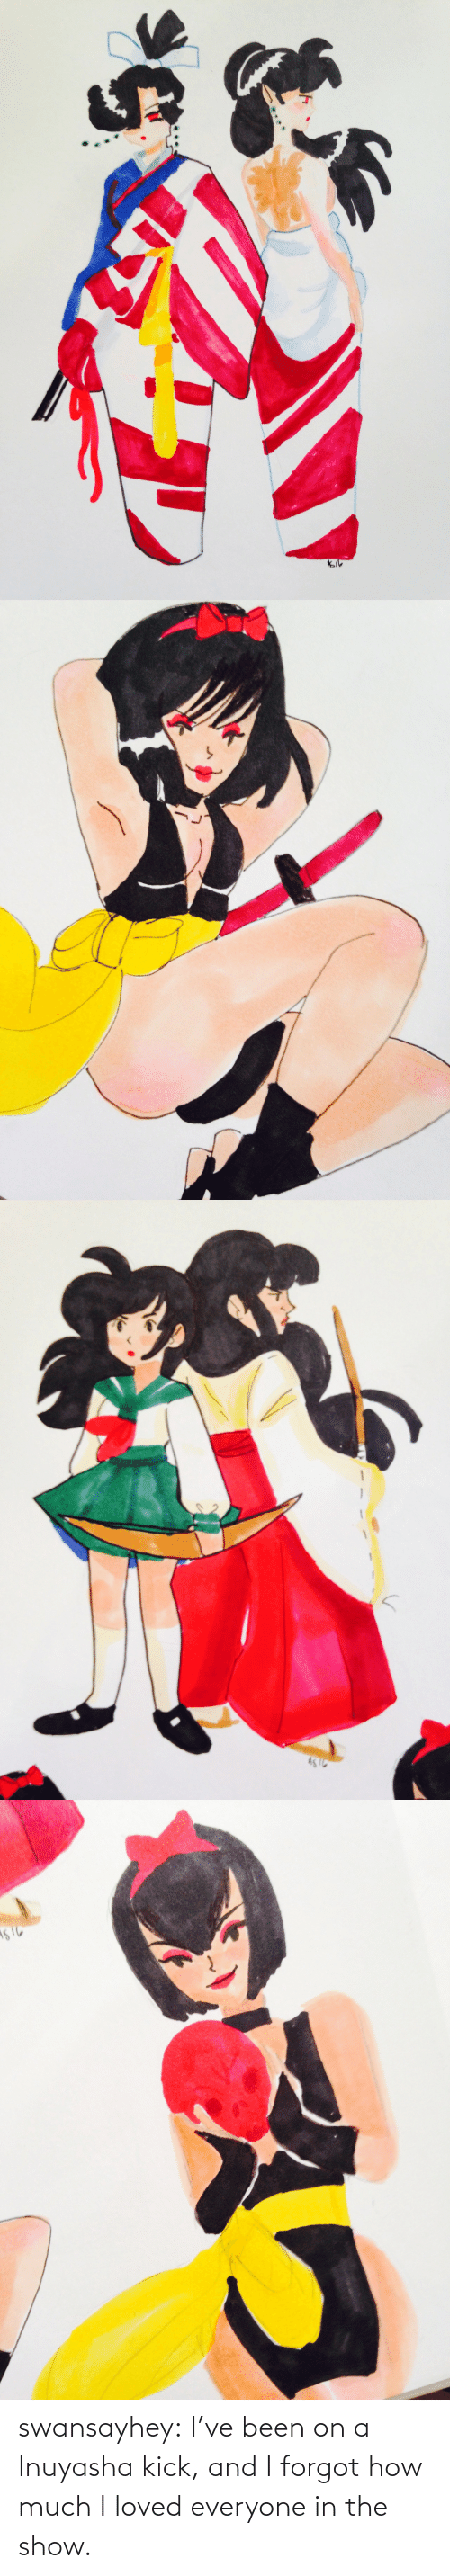 show: swansayhey:  I've been on a Inuyasha kick, and I forgot how much I loved everyone in the show.